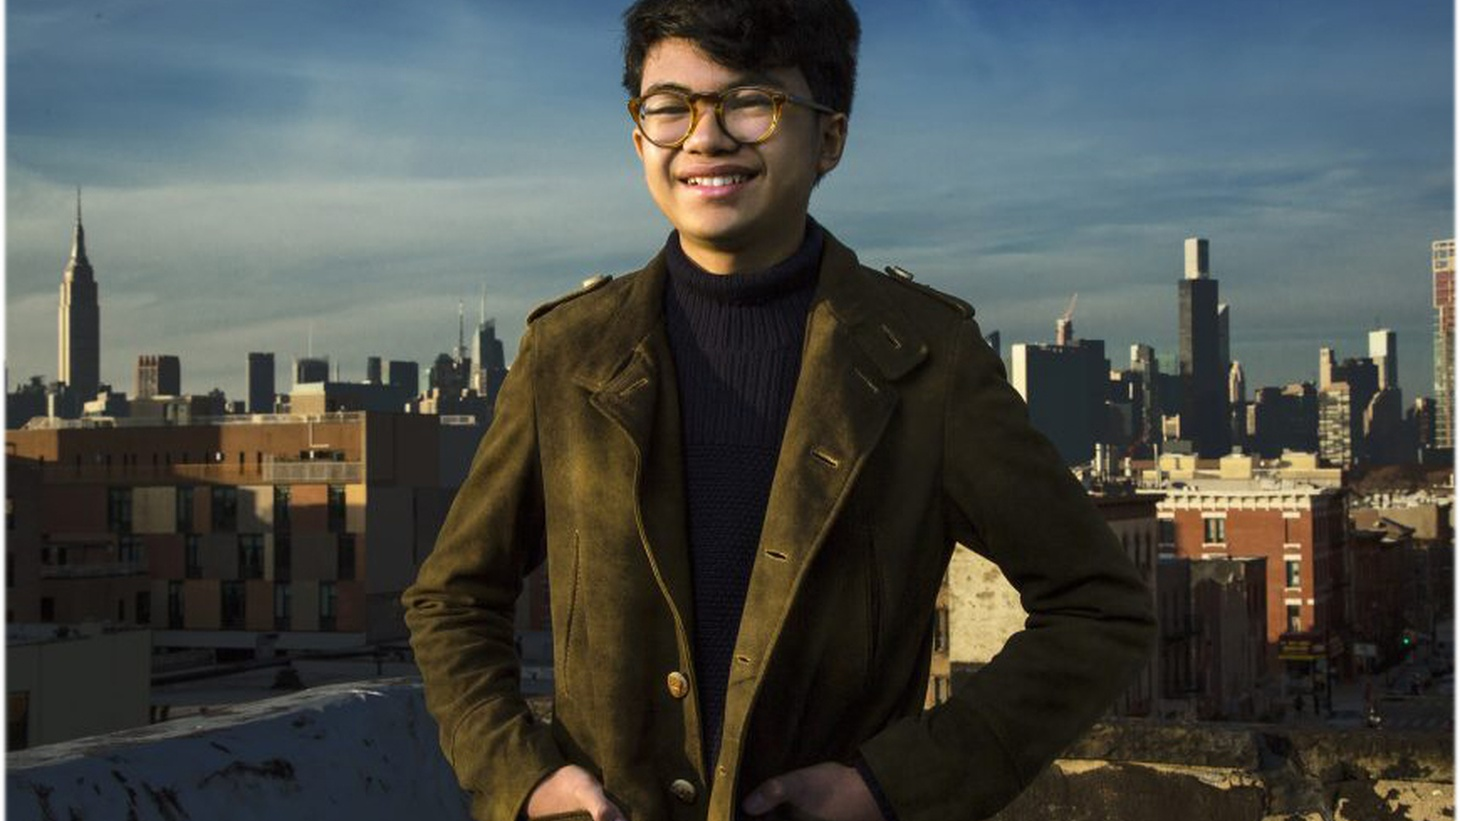 Rhythm Planet host Tom Schnabel drops by to share music from jazz prodigy Joey Alexander and Orquesta Akokan, an Afro-Cuban project recorded in Cuba and released on Daptone records.